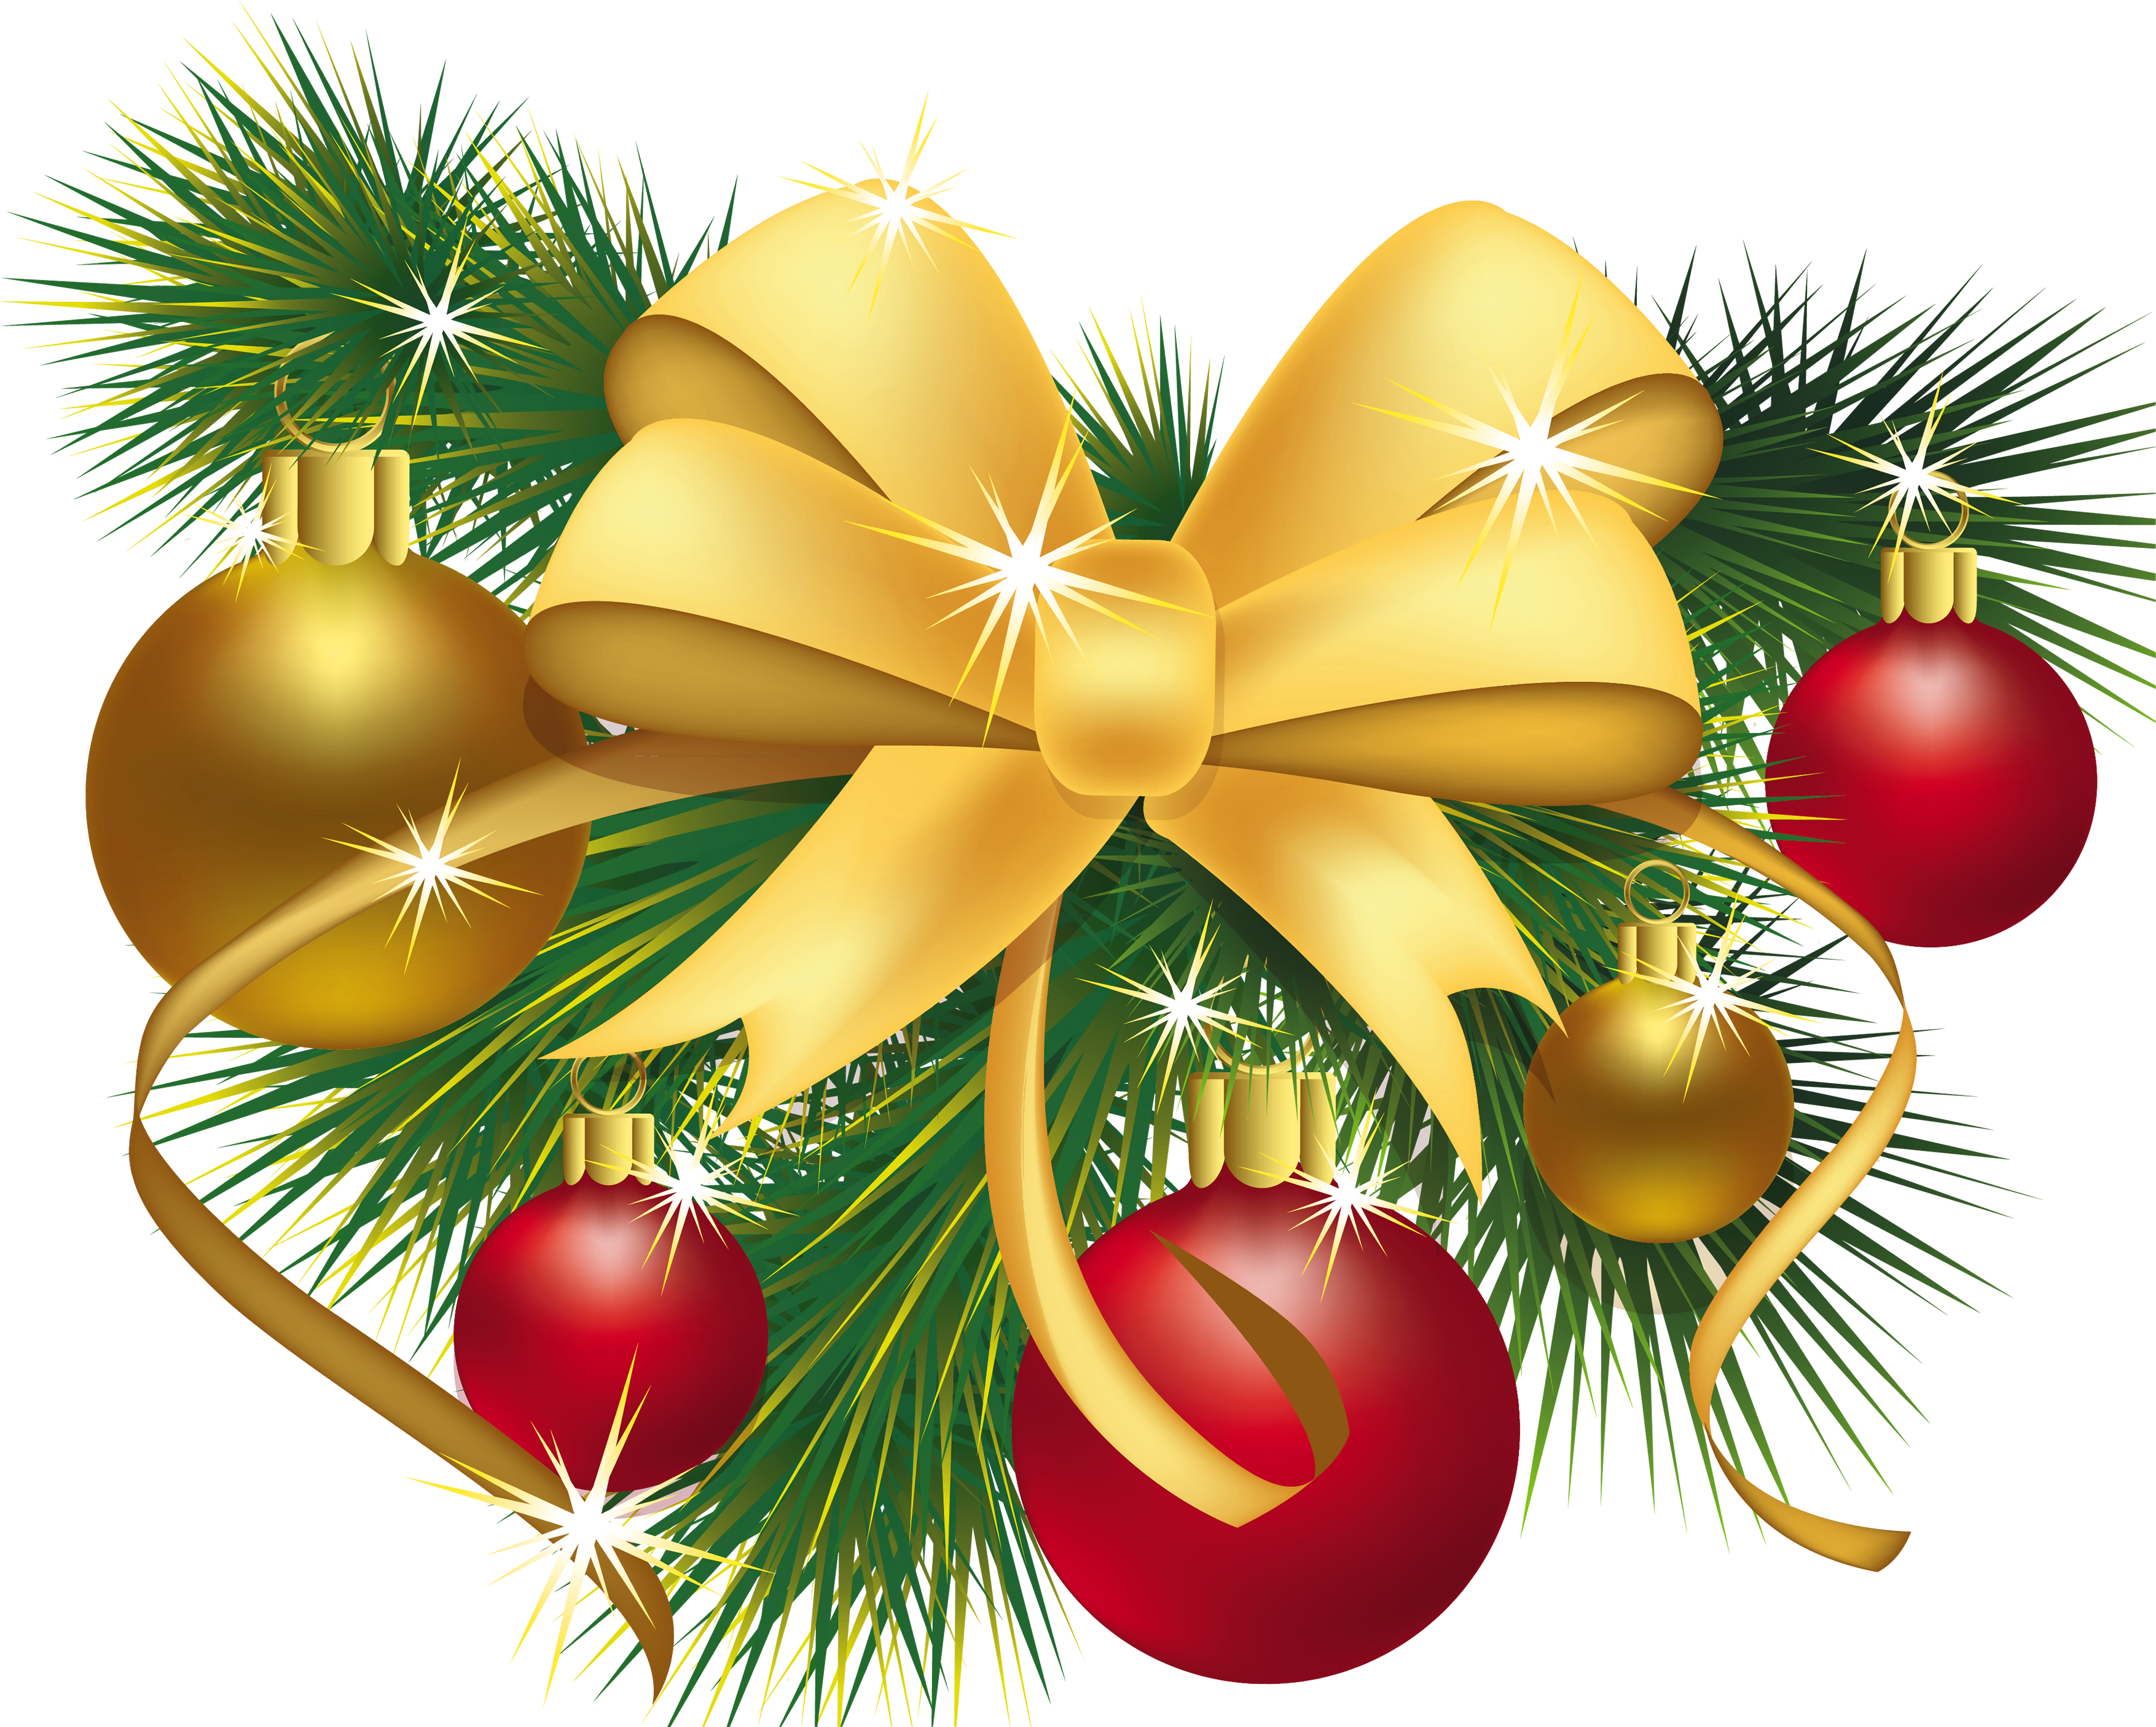 Christmas Ornament Png Free Christmas Ornament Png Transparent